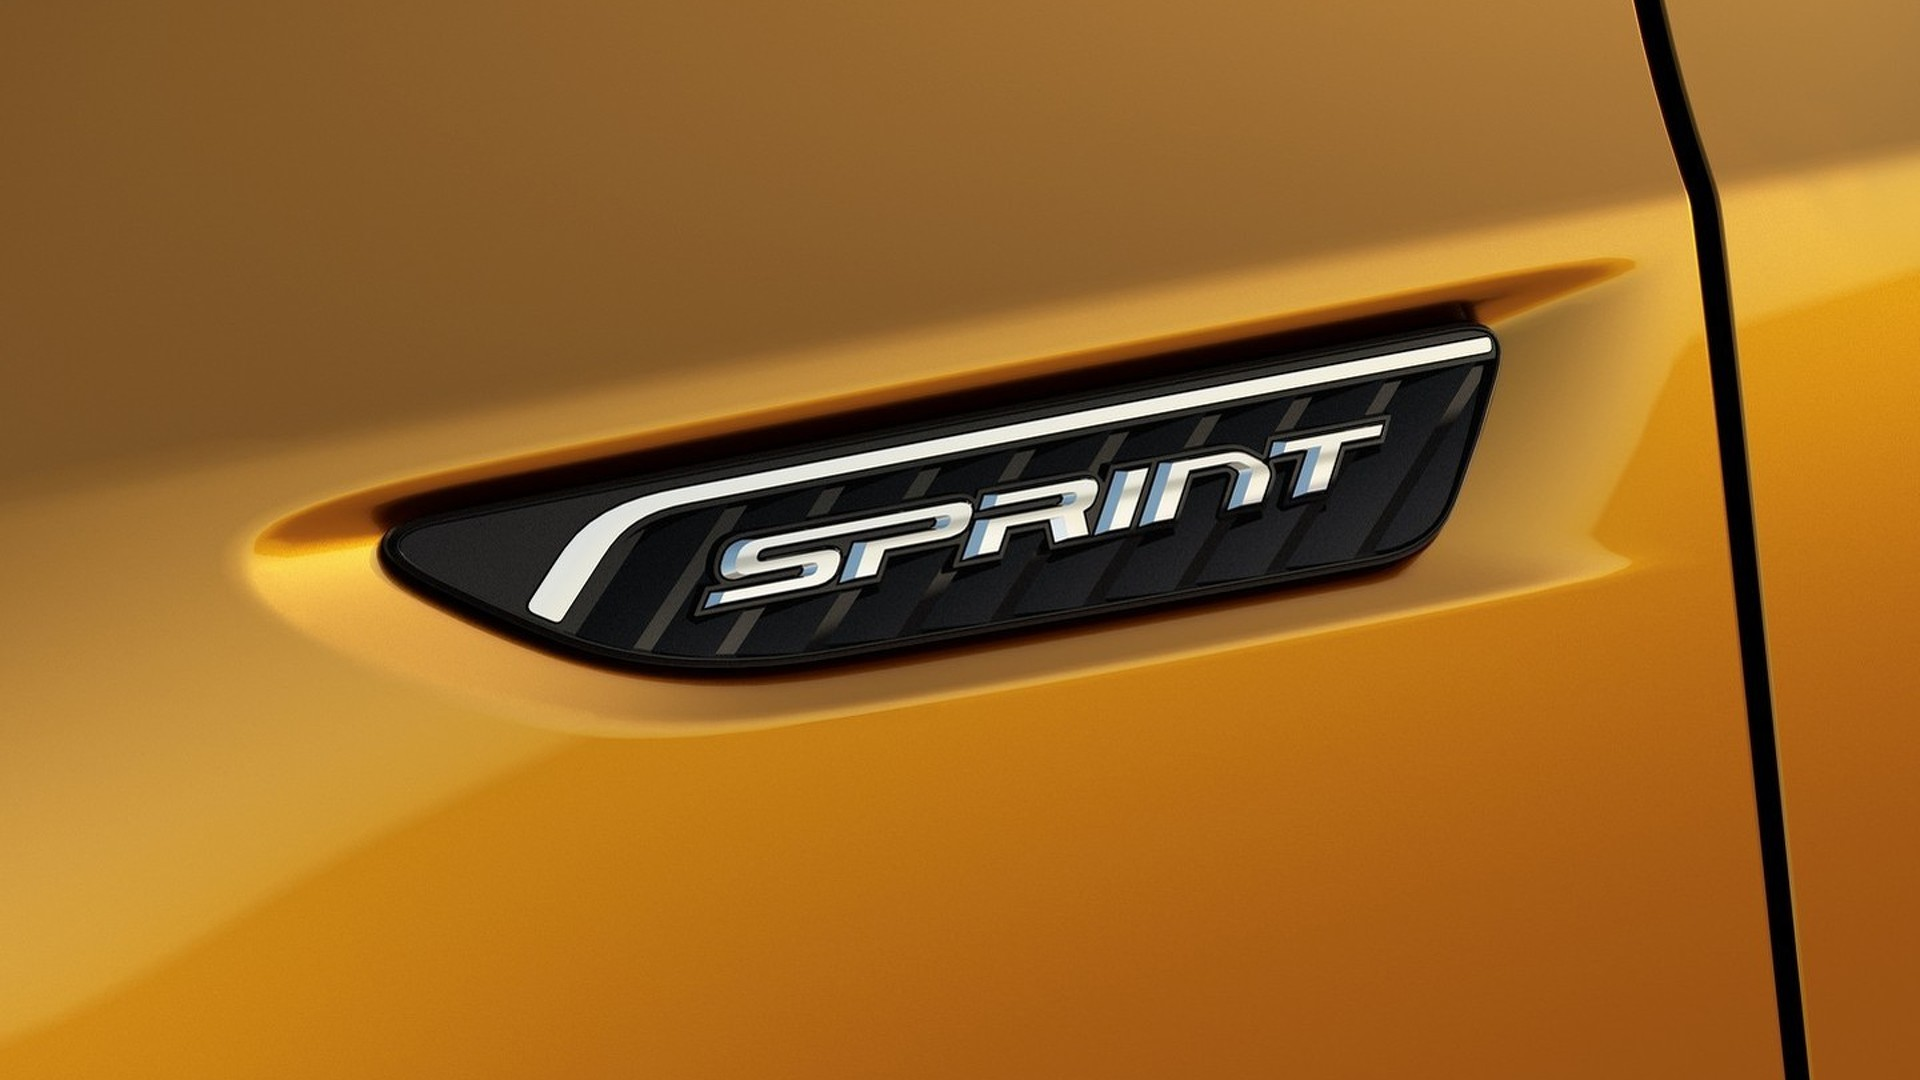 Ford Falcon XR Sprint specs leaked, V8 gets 463 hp